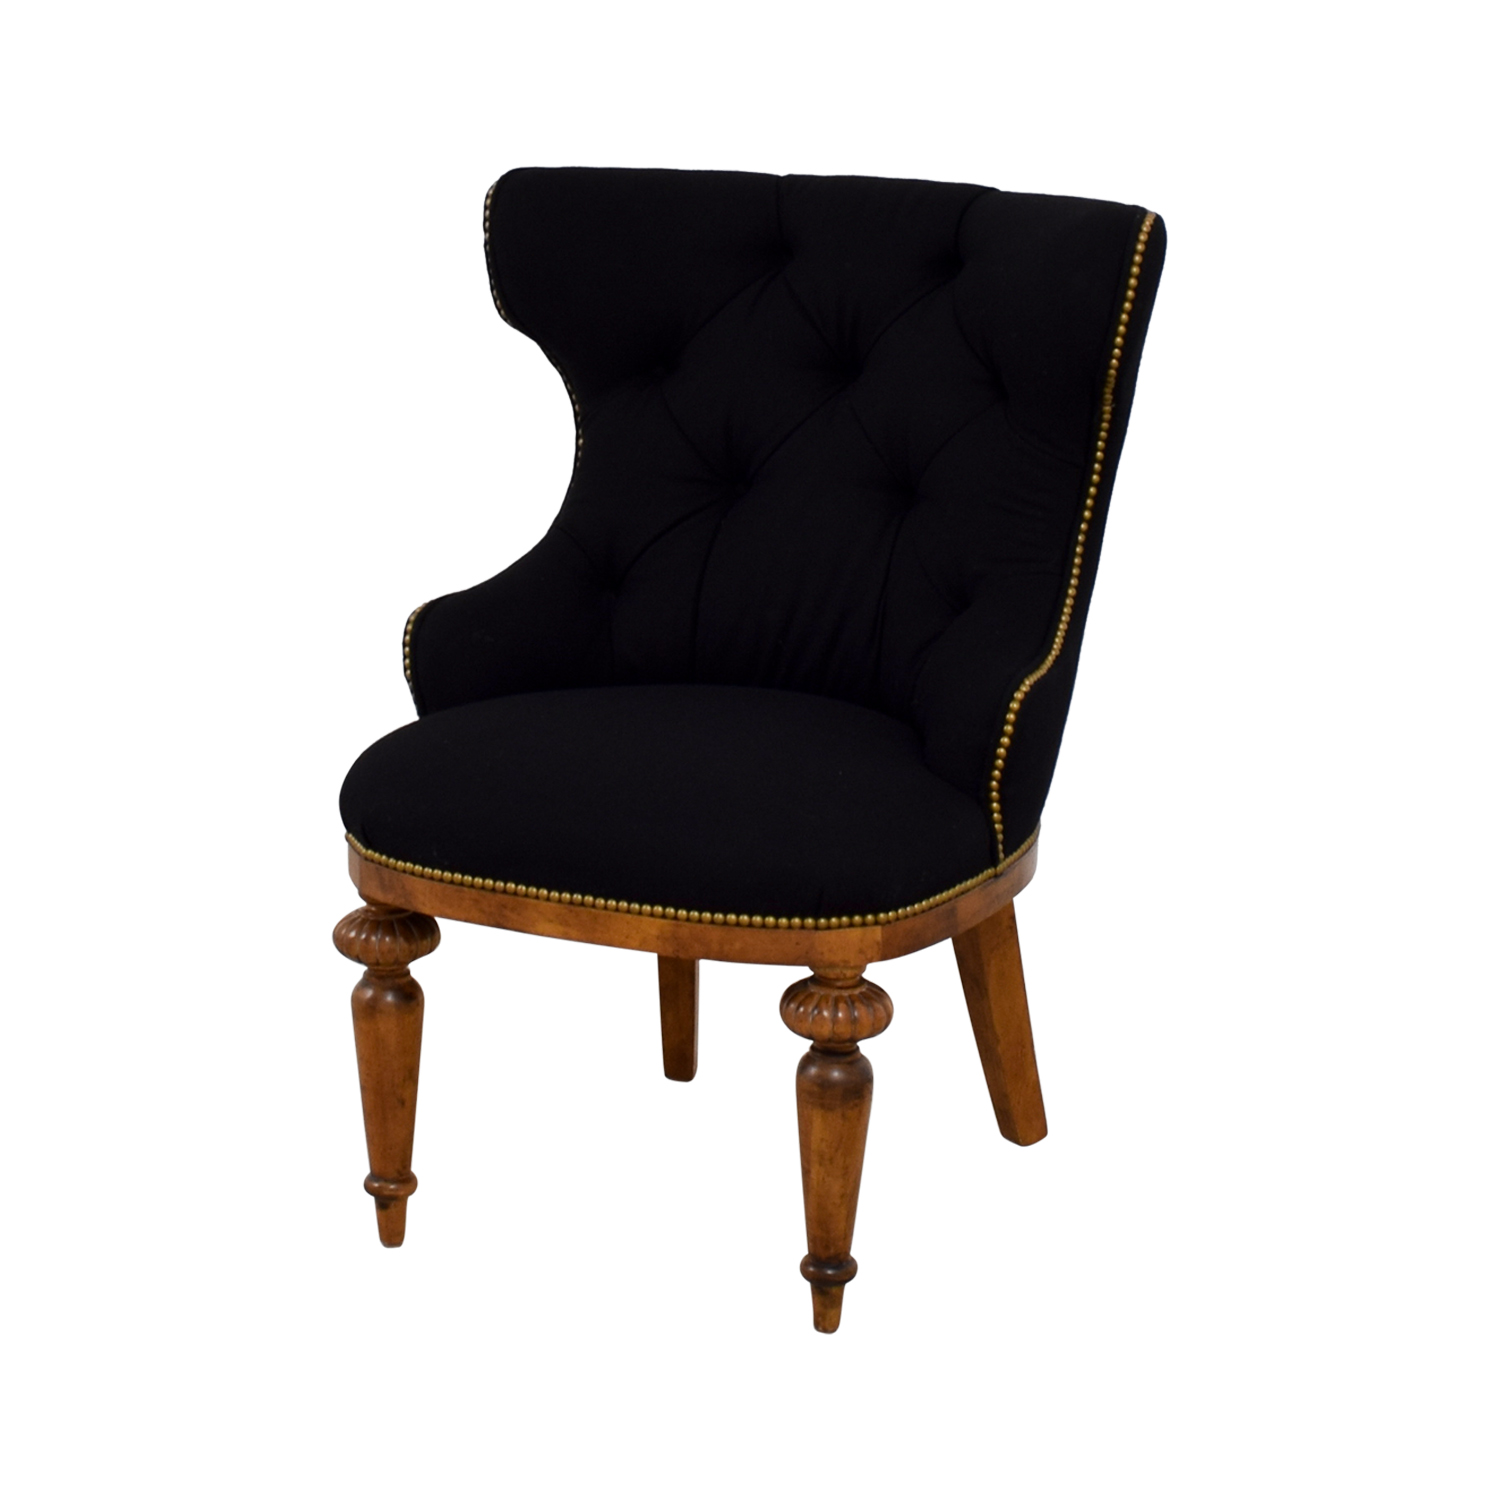 Furniture Masters Furniture Masters Black Tufted Nailhead Accent Chair Accent Chairs